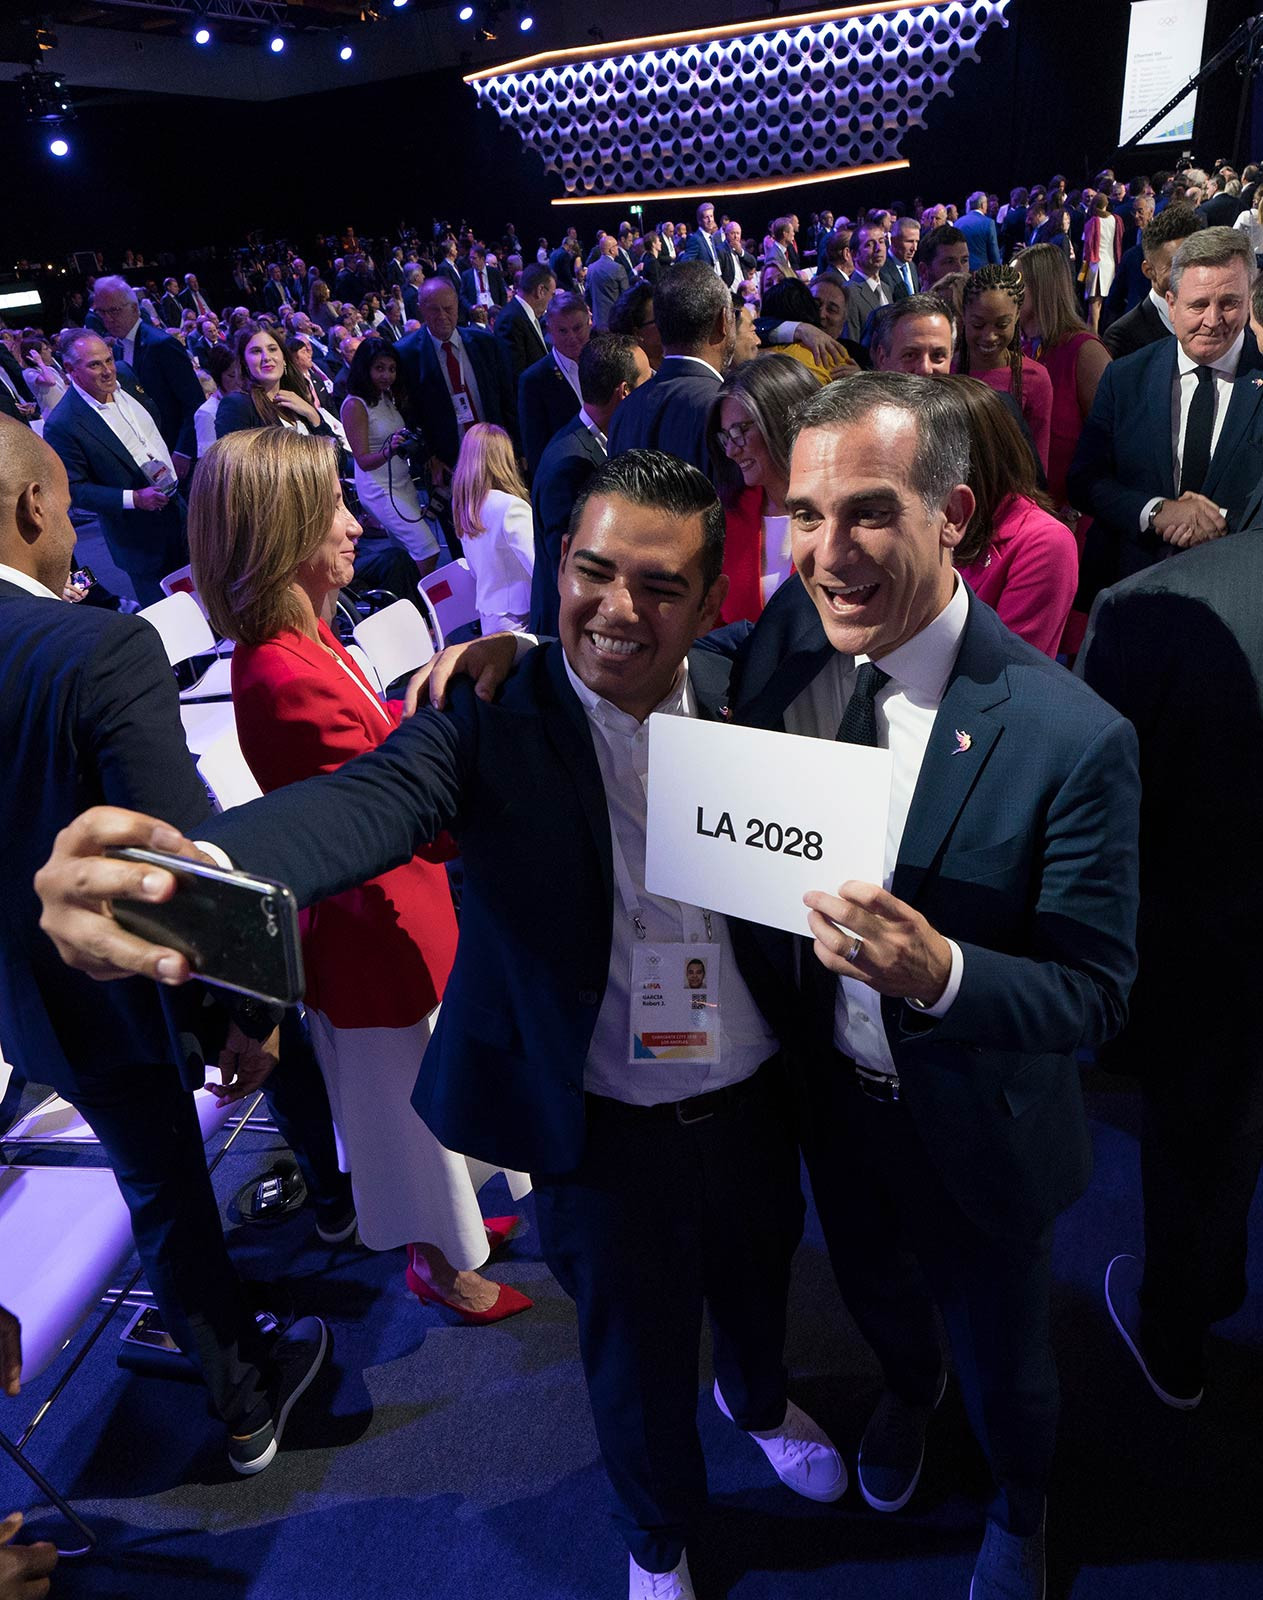 Los Angeles 2028 is to receive quarterly payments of $9 million from the IOC for the next five years as part of the Host City Contract to help support community projects ©IOC